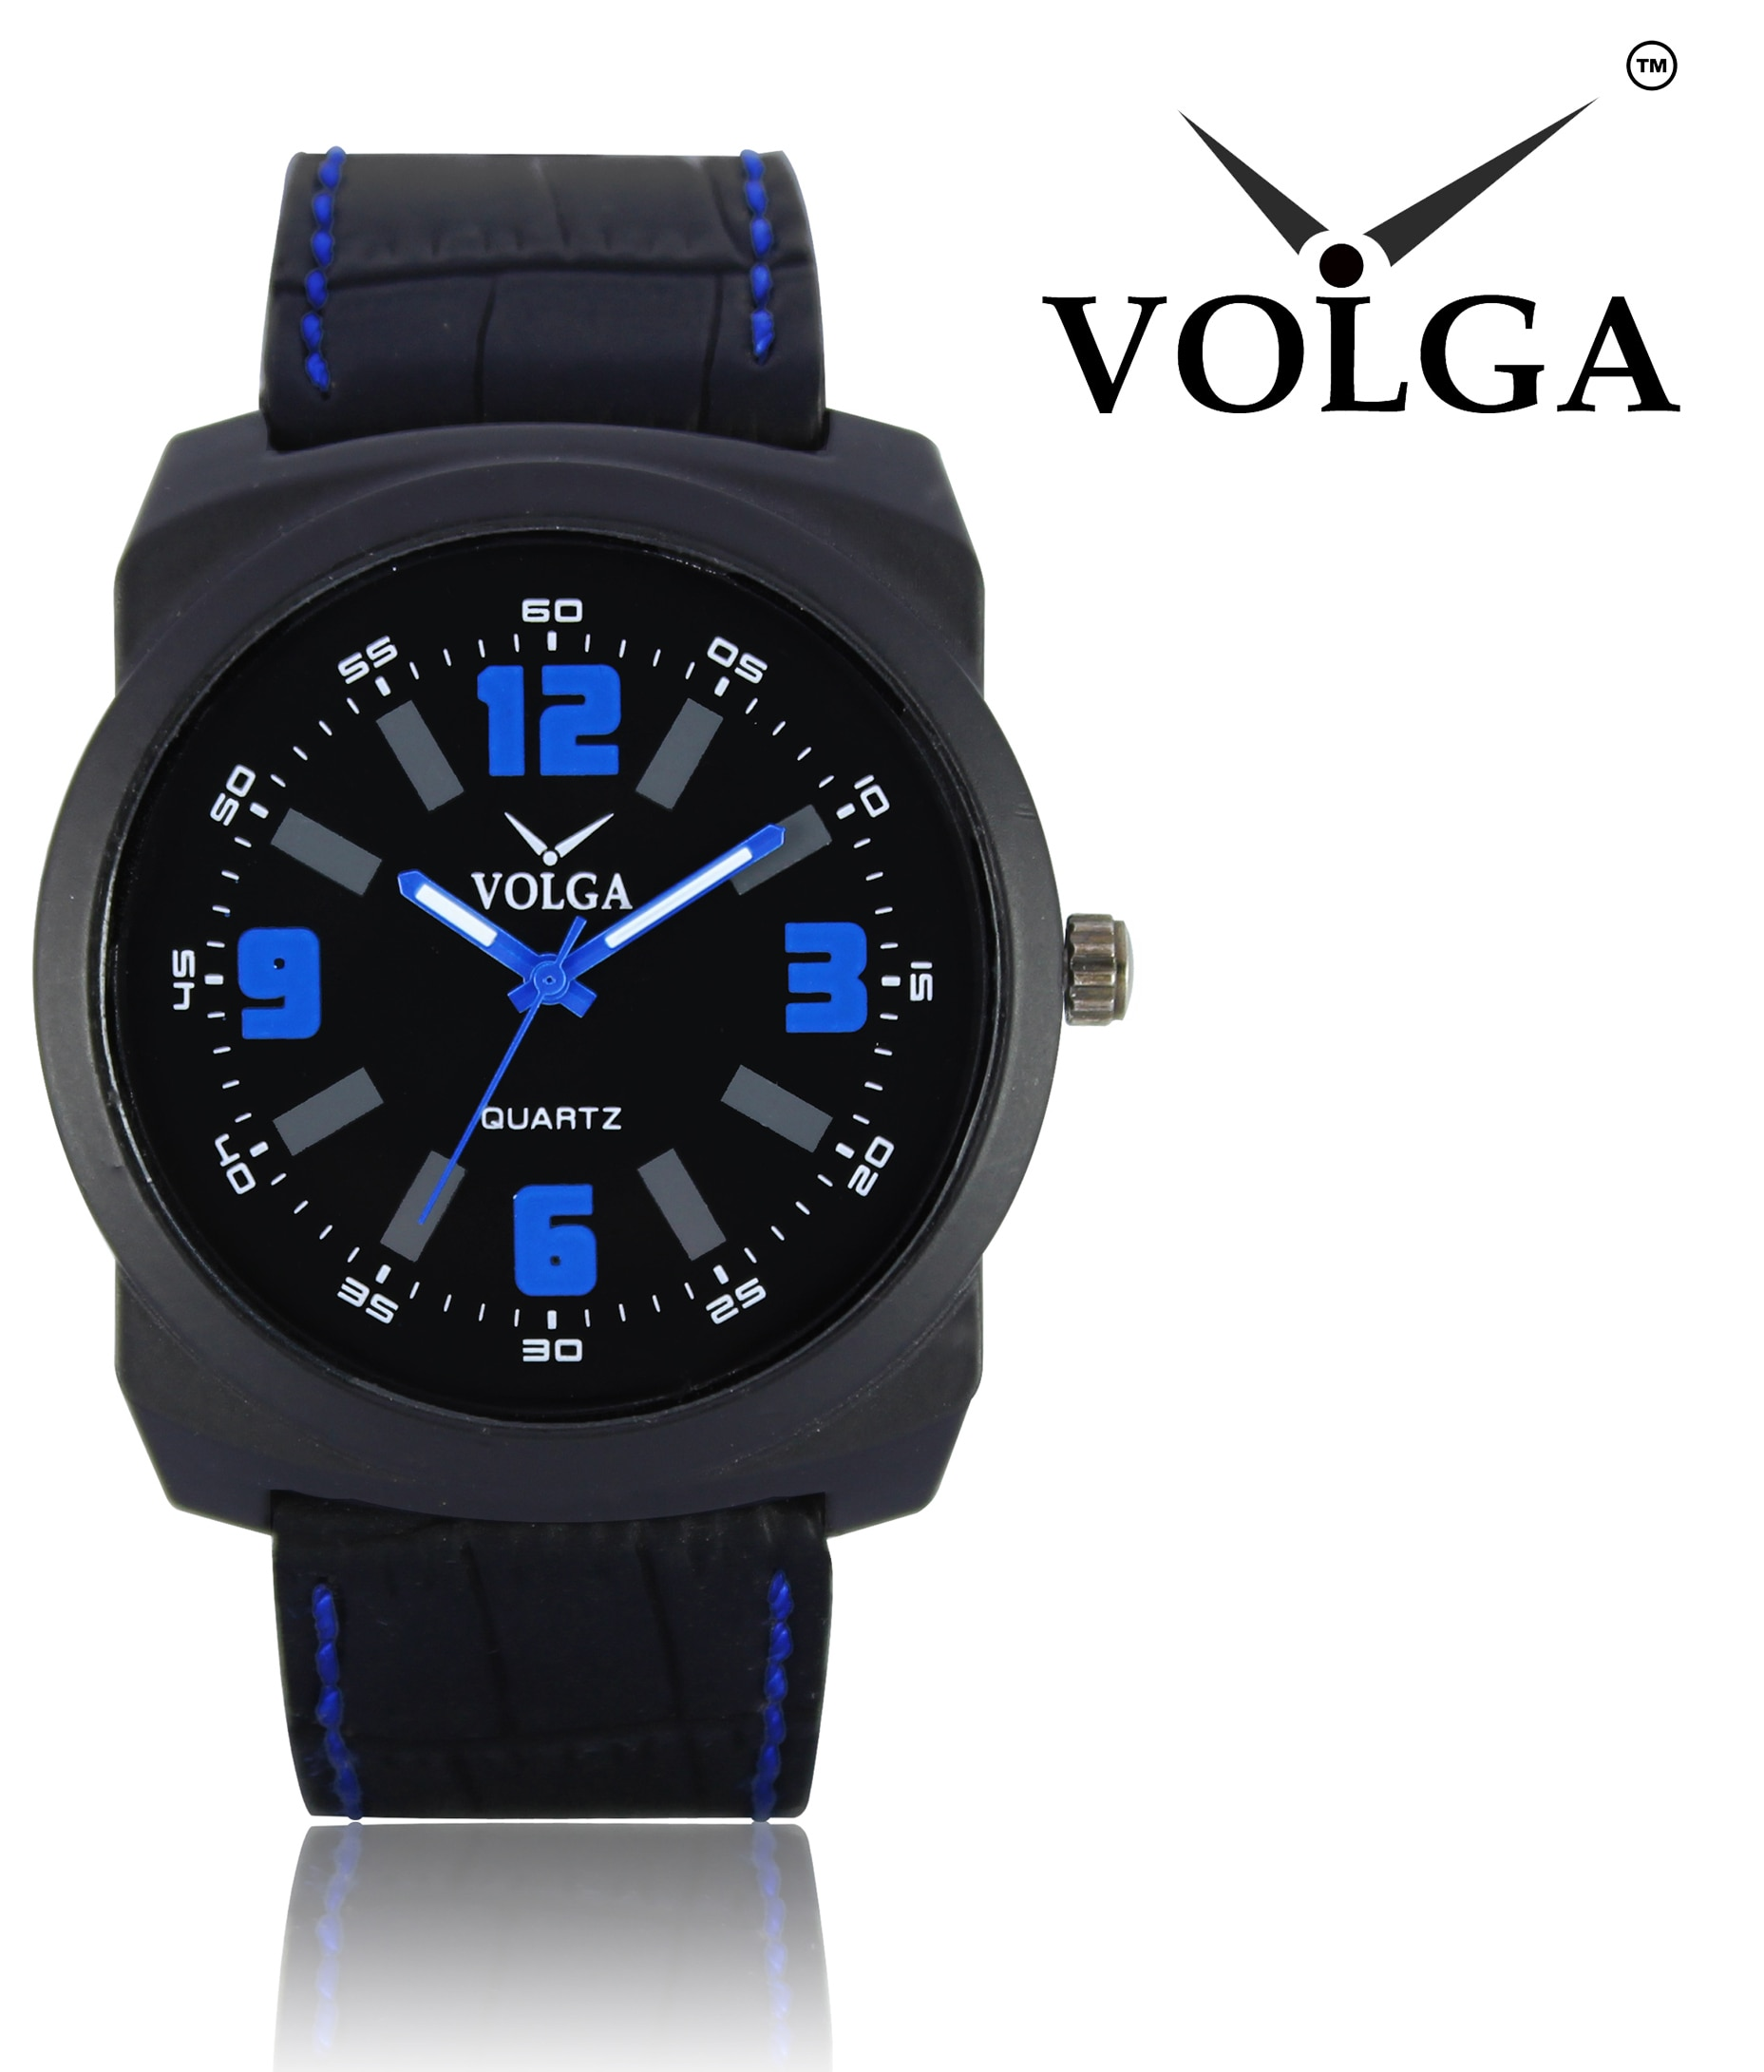 Volga Collection Analogue Round Black Dial And Black Leather Strap Quartz Movement Sport Watch For Boys And Men